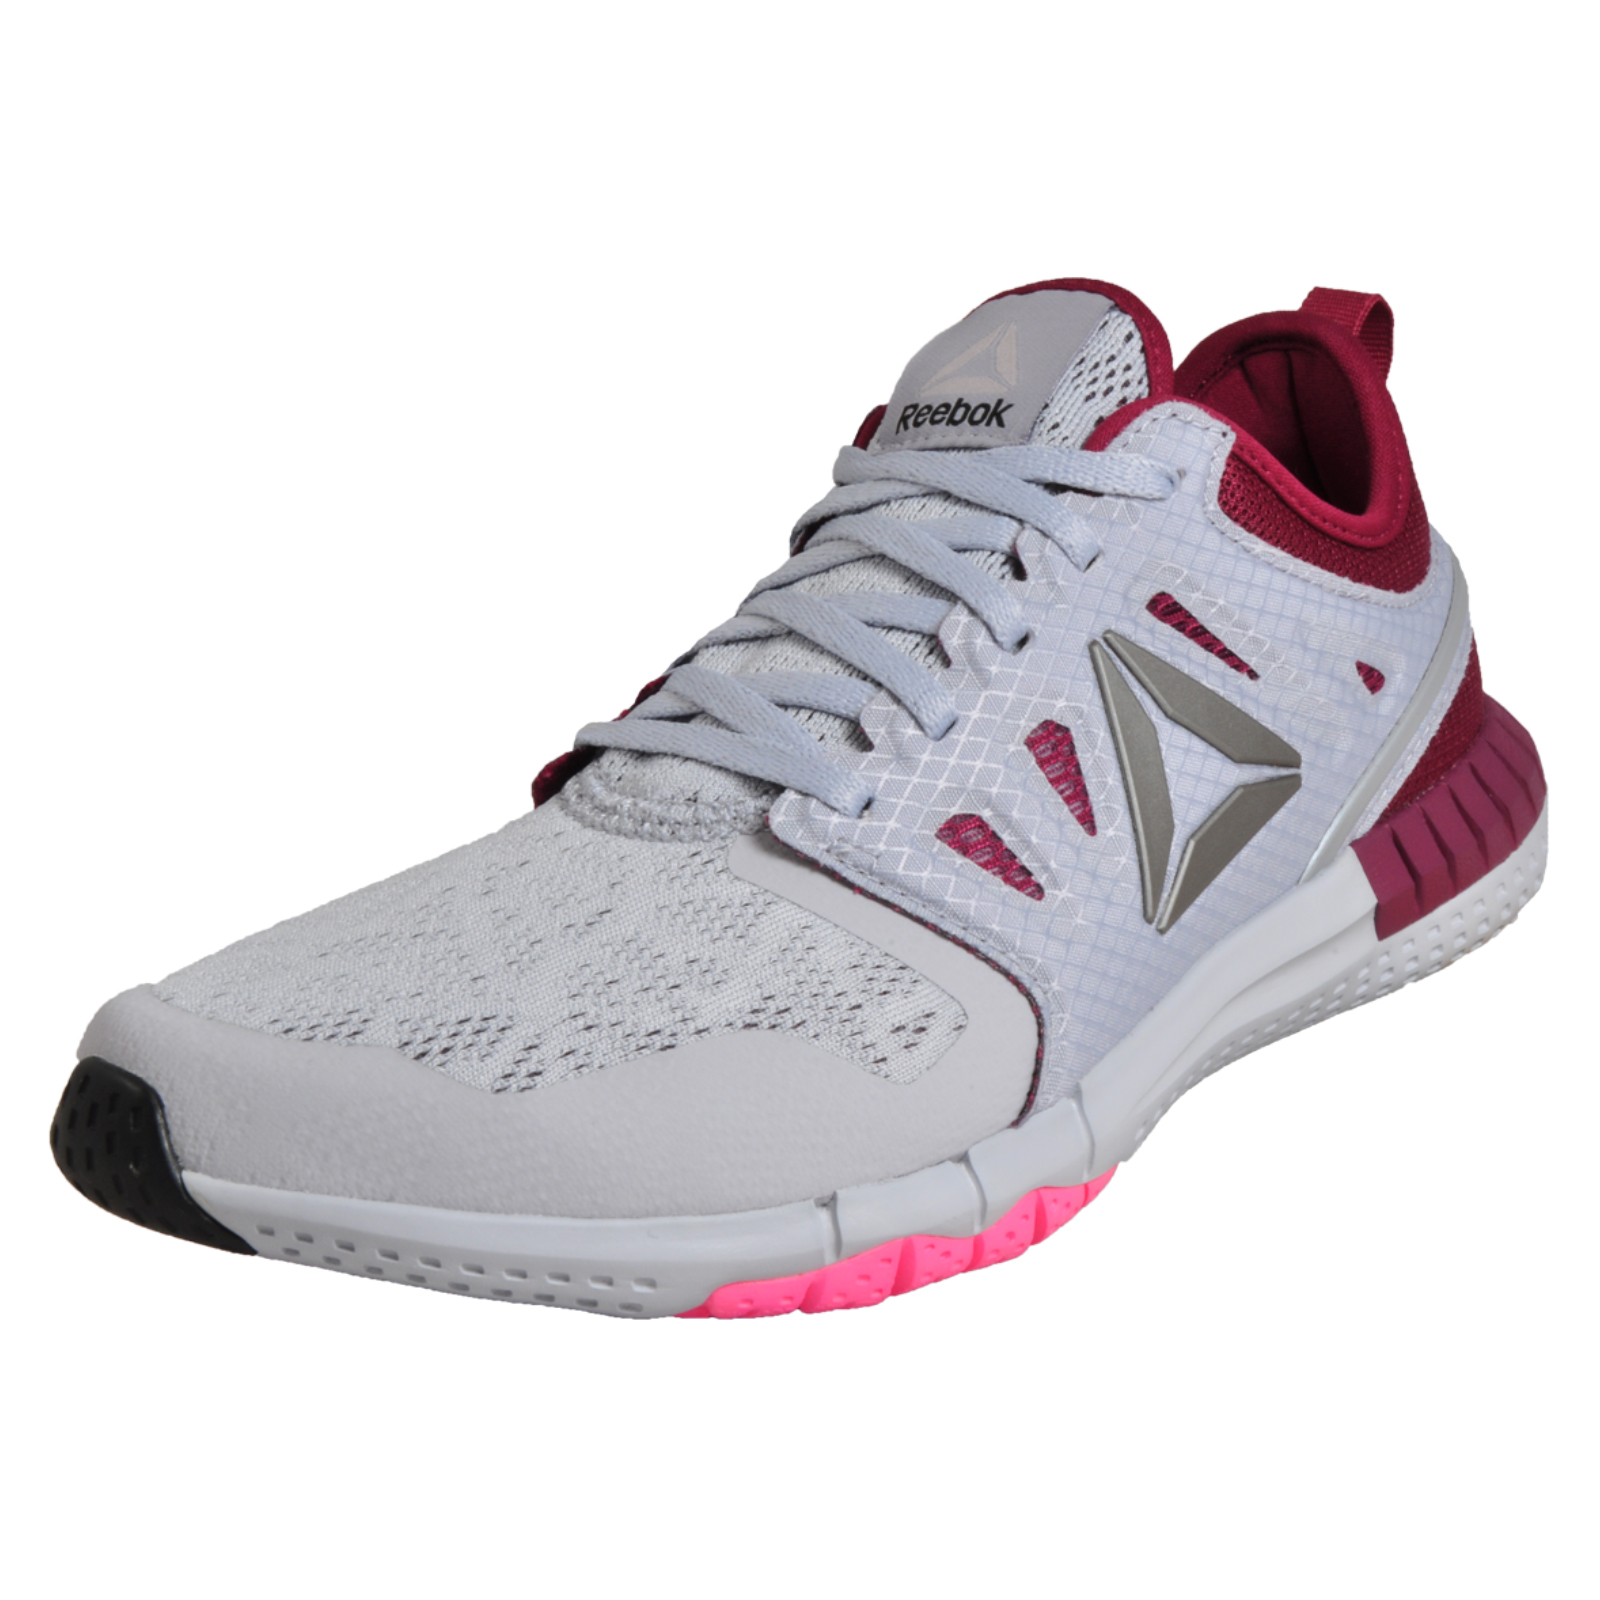 bca27a1cb5abf1 Details about Reebok Z Print 3D Womens Running Shoes Fitness Gym Trainers  Grey